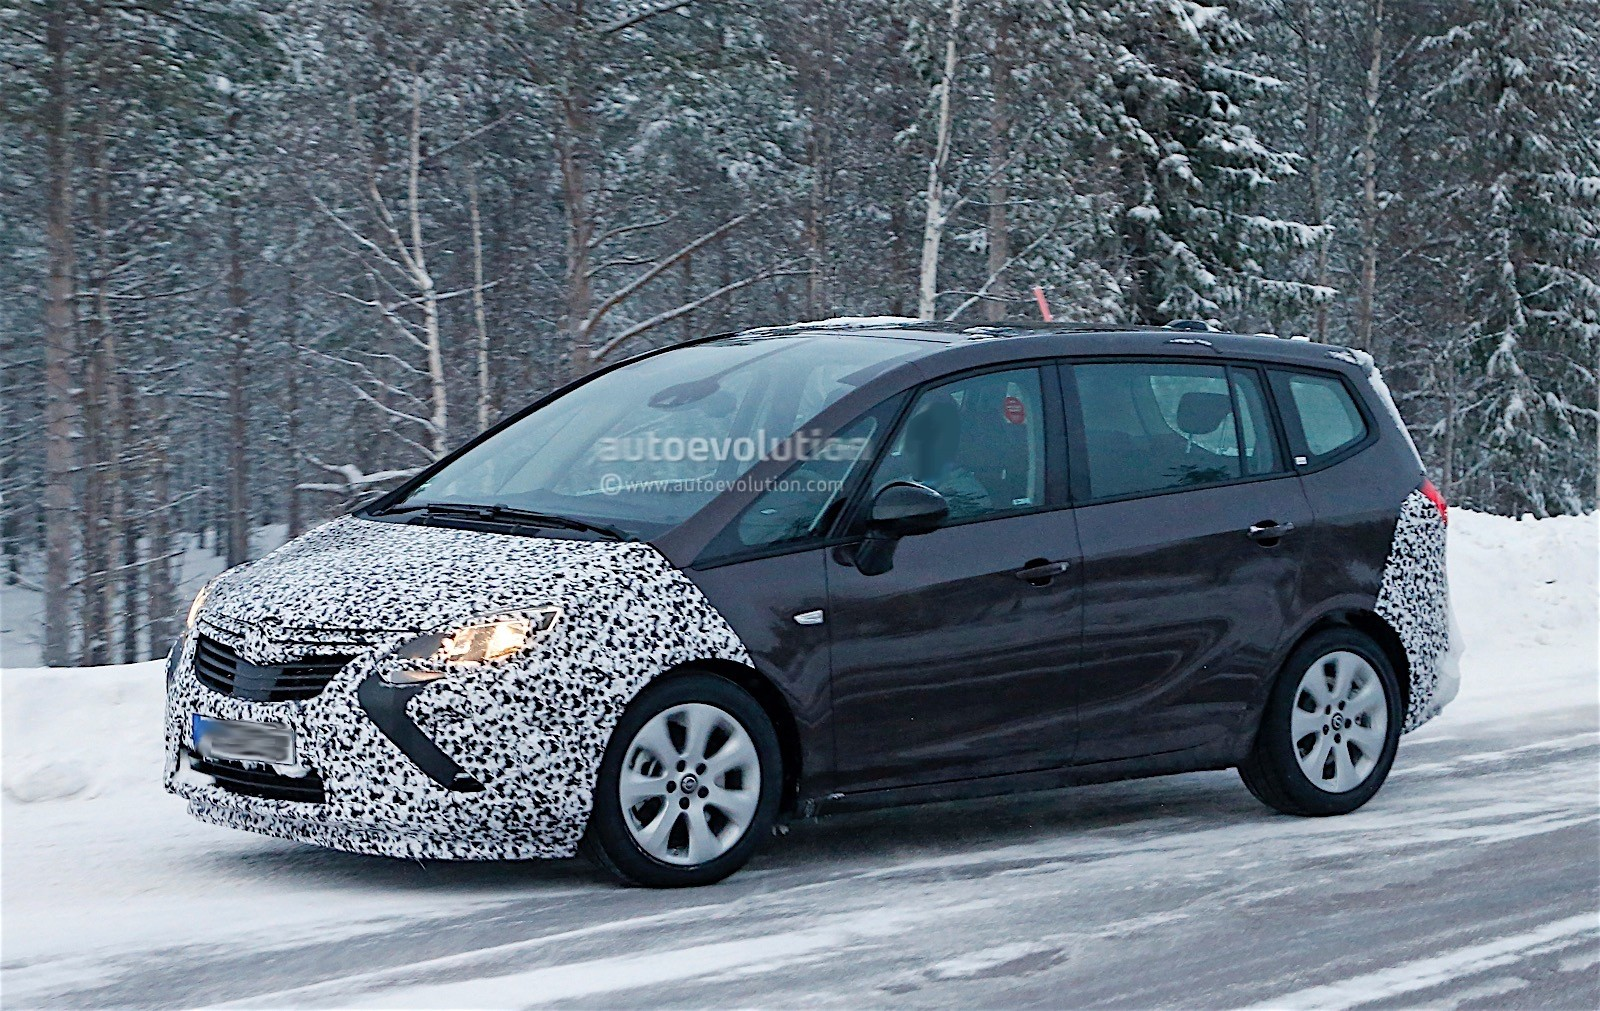 2017 opel zafira facelift spied with less camouflage autoevolution. Black Bedroom Furniture Sets. Home Design Ideas